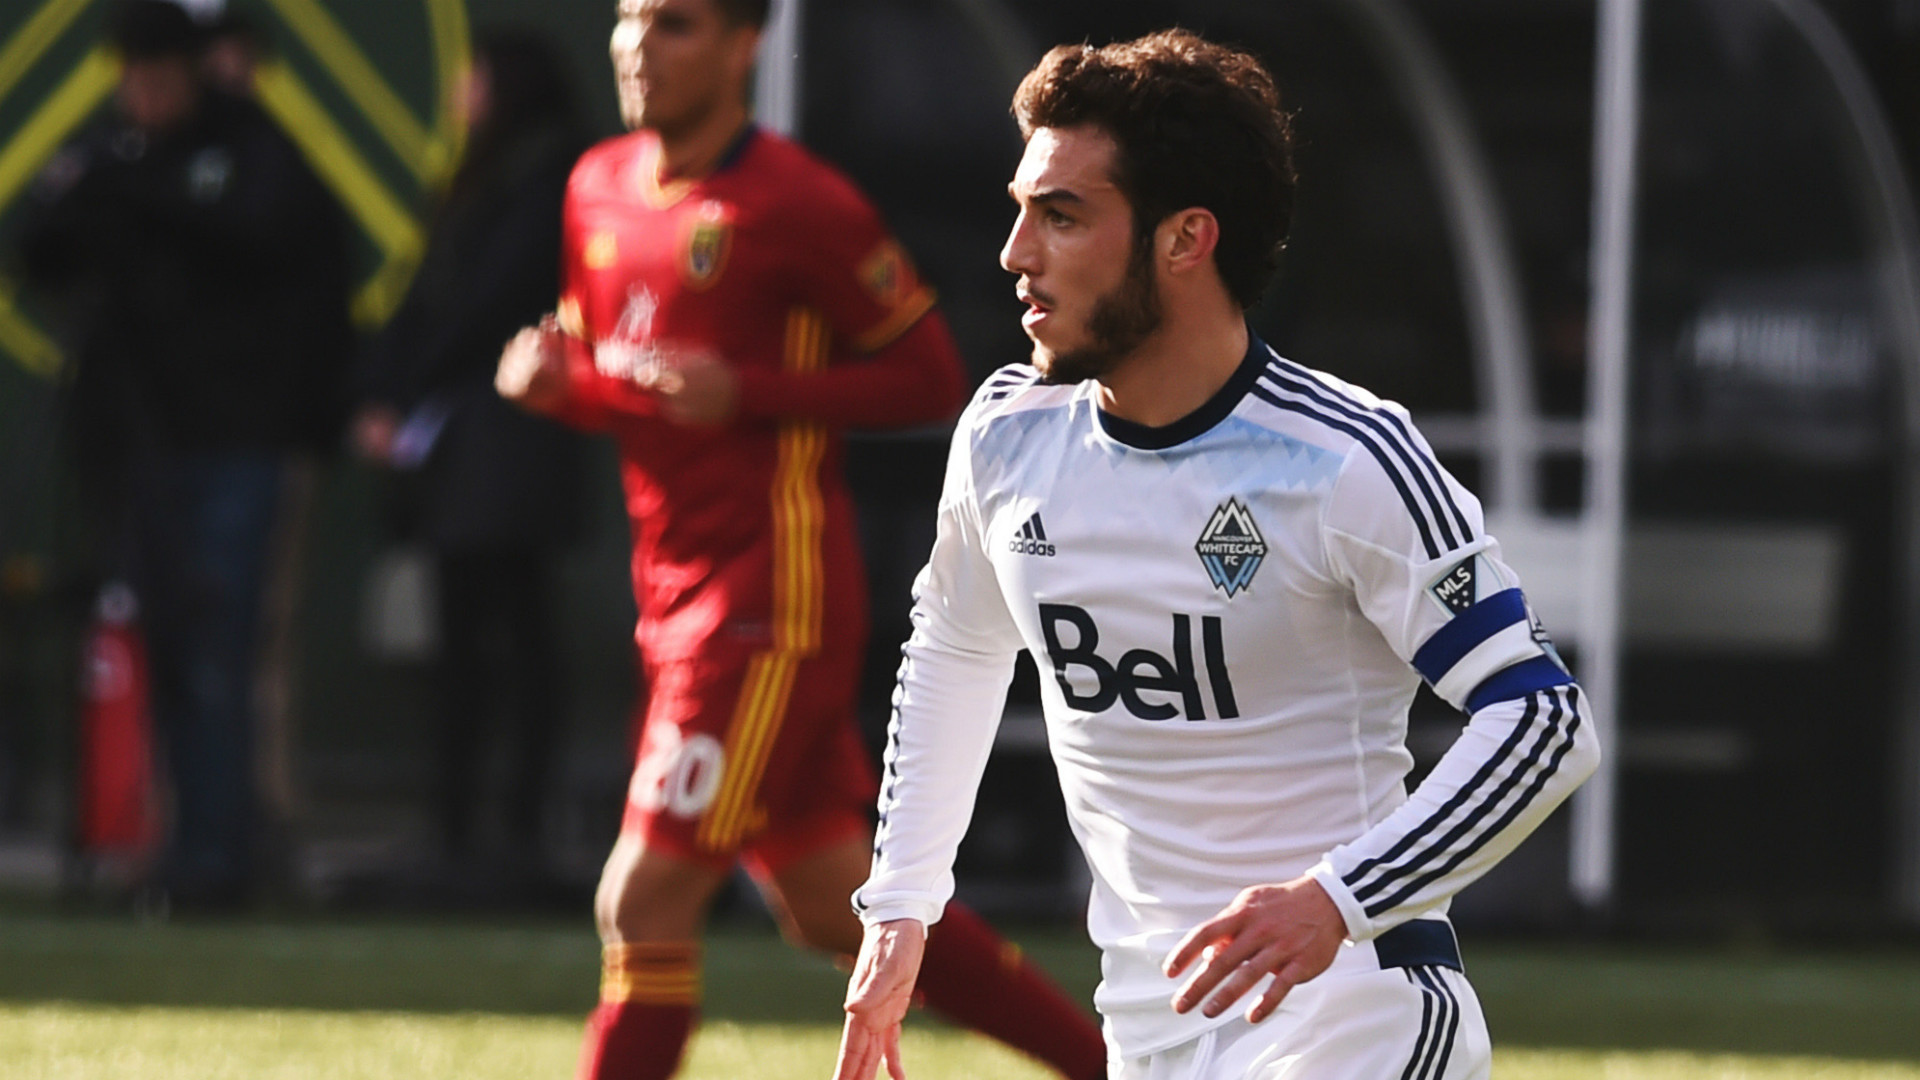 Russell-teibert-vancouver-whitecaps_7r32zw7n001y143mlc5d0qoeb